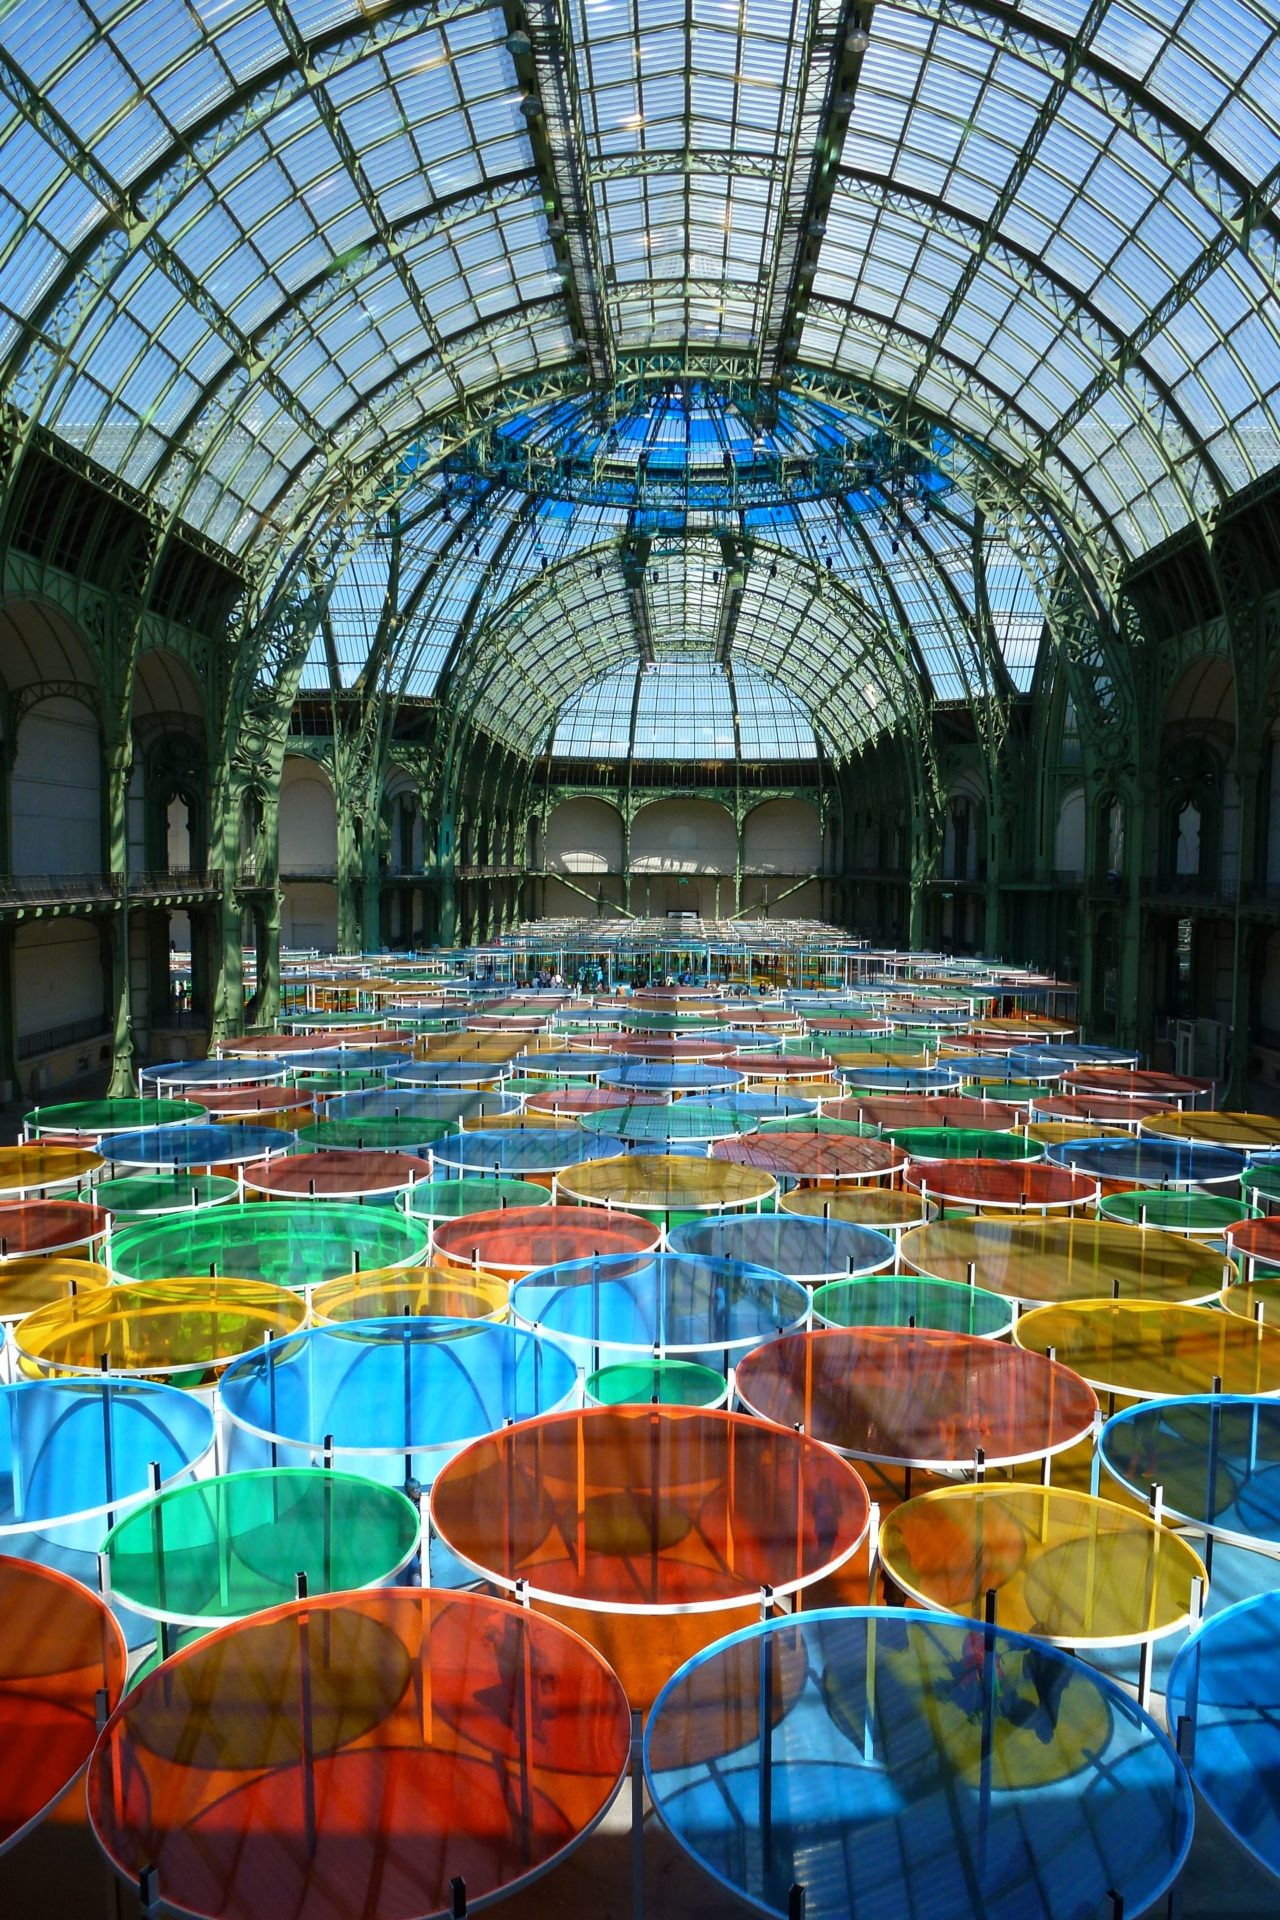 @ Photo-souvenir: Excentrique(s), travail in situ, Monumenta 2012, Grand Palais, Paris, 2012. Détail. © DB-ADAGP Paris.